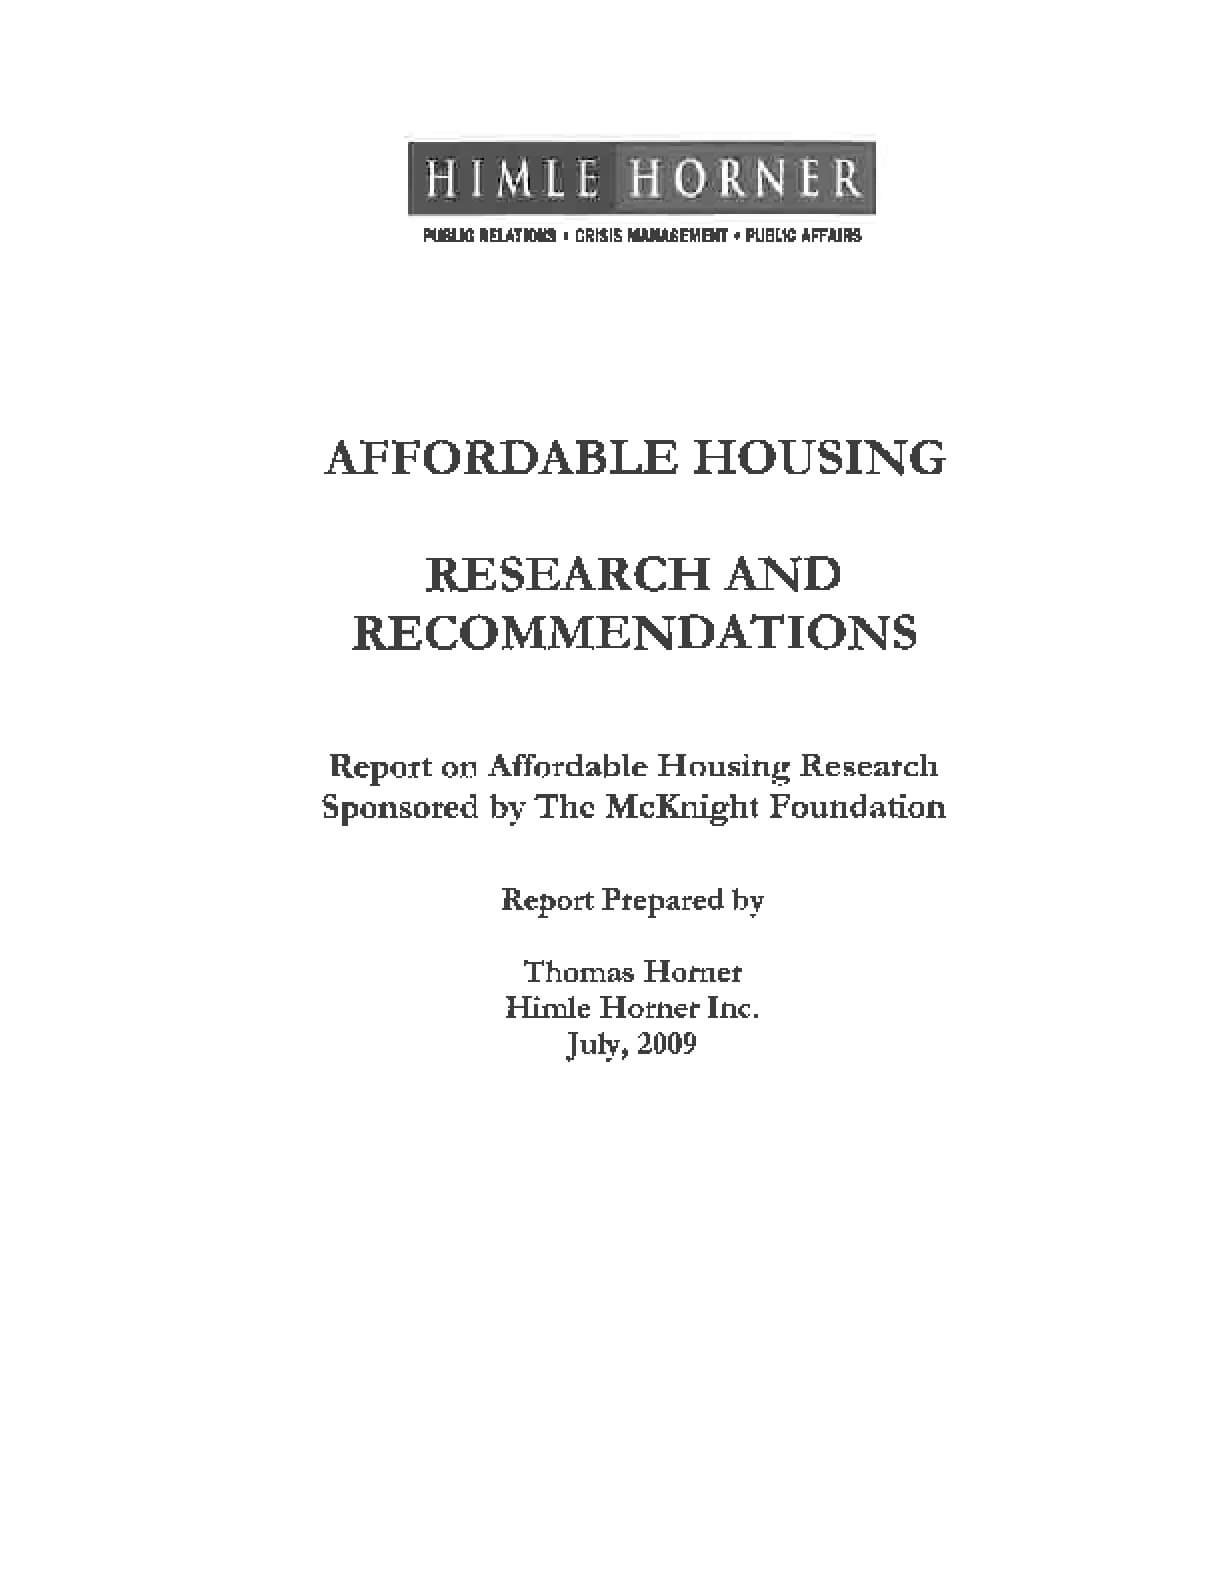 Affordable Housing Research and Recommendations